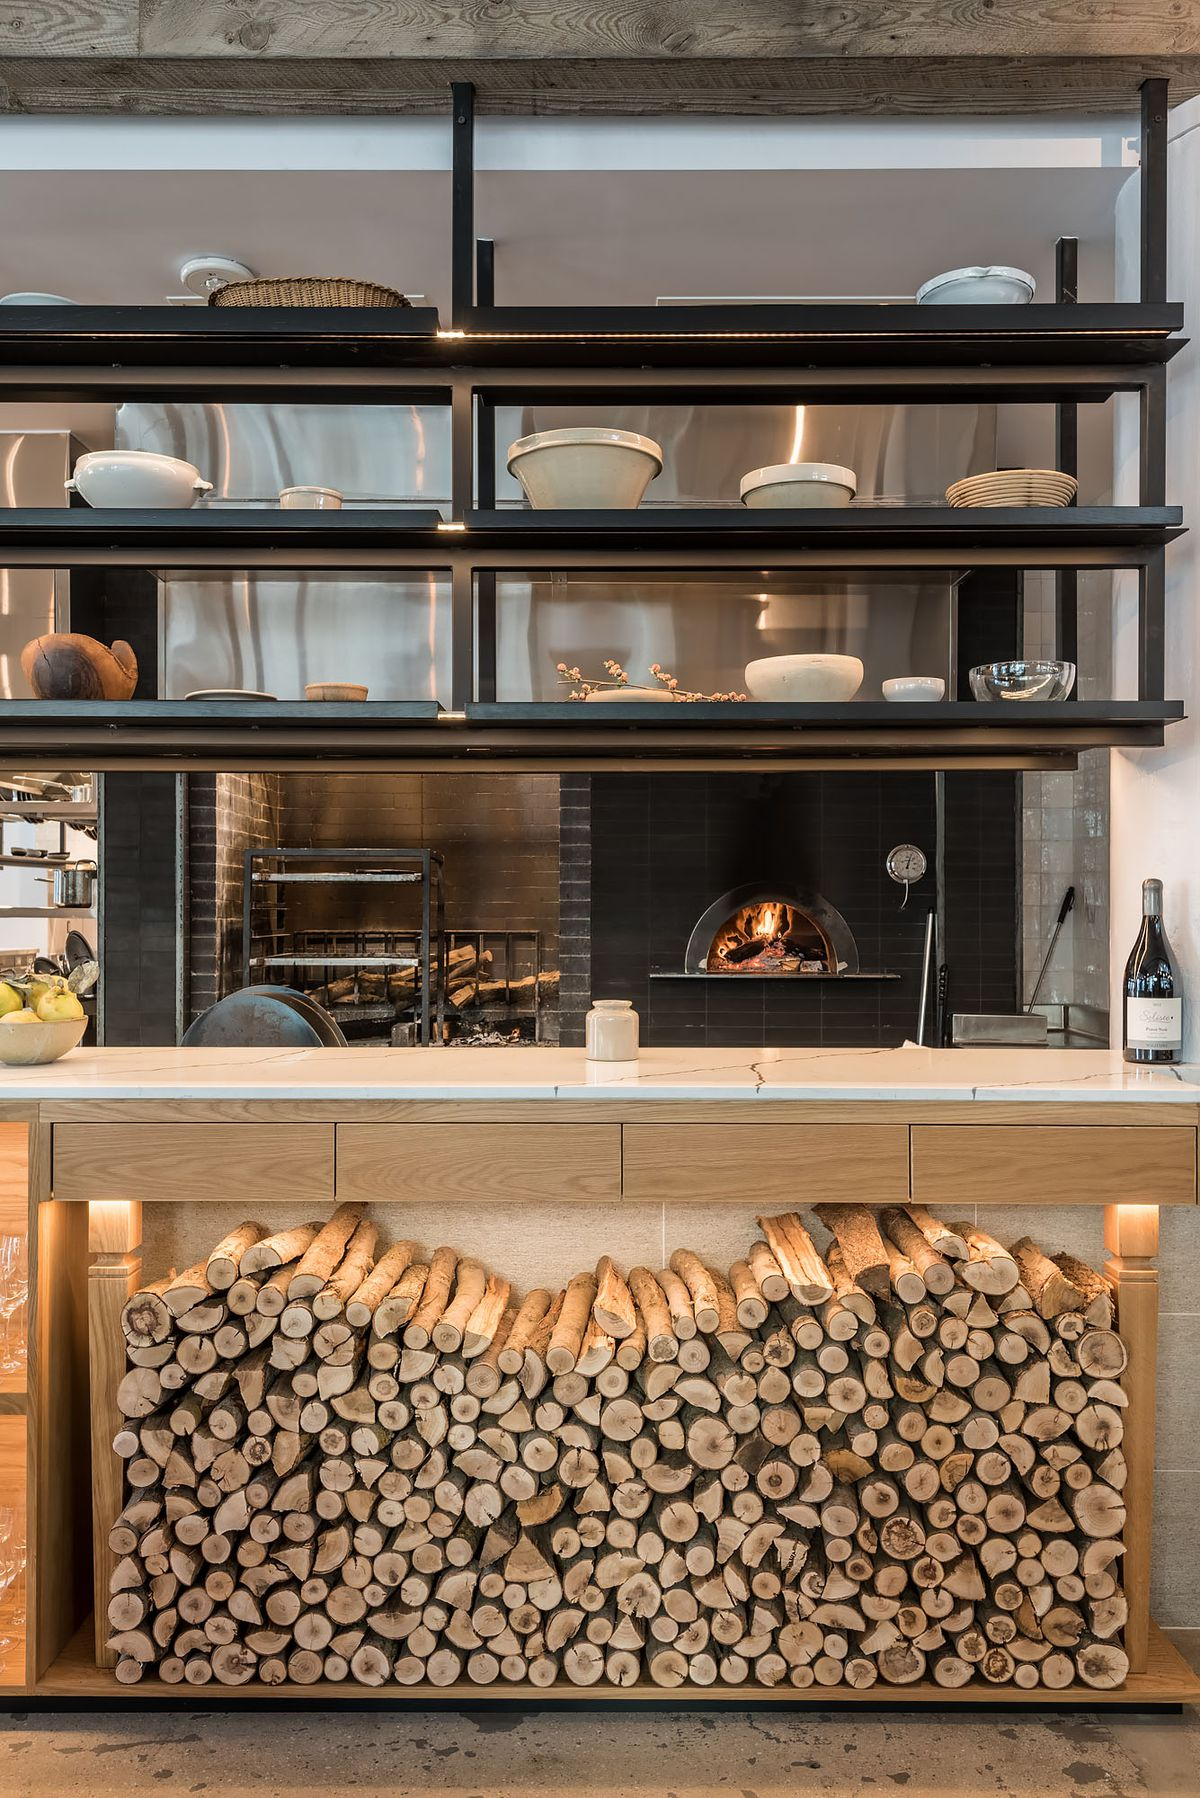 A trim stack of wood next to an open wood-fired oven at a new restaurant.